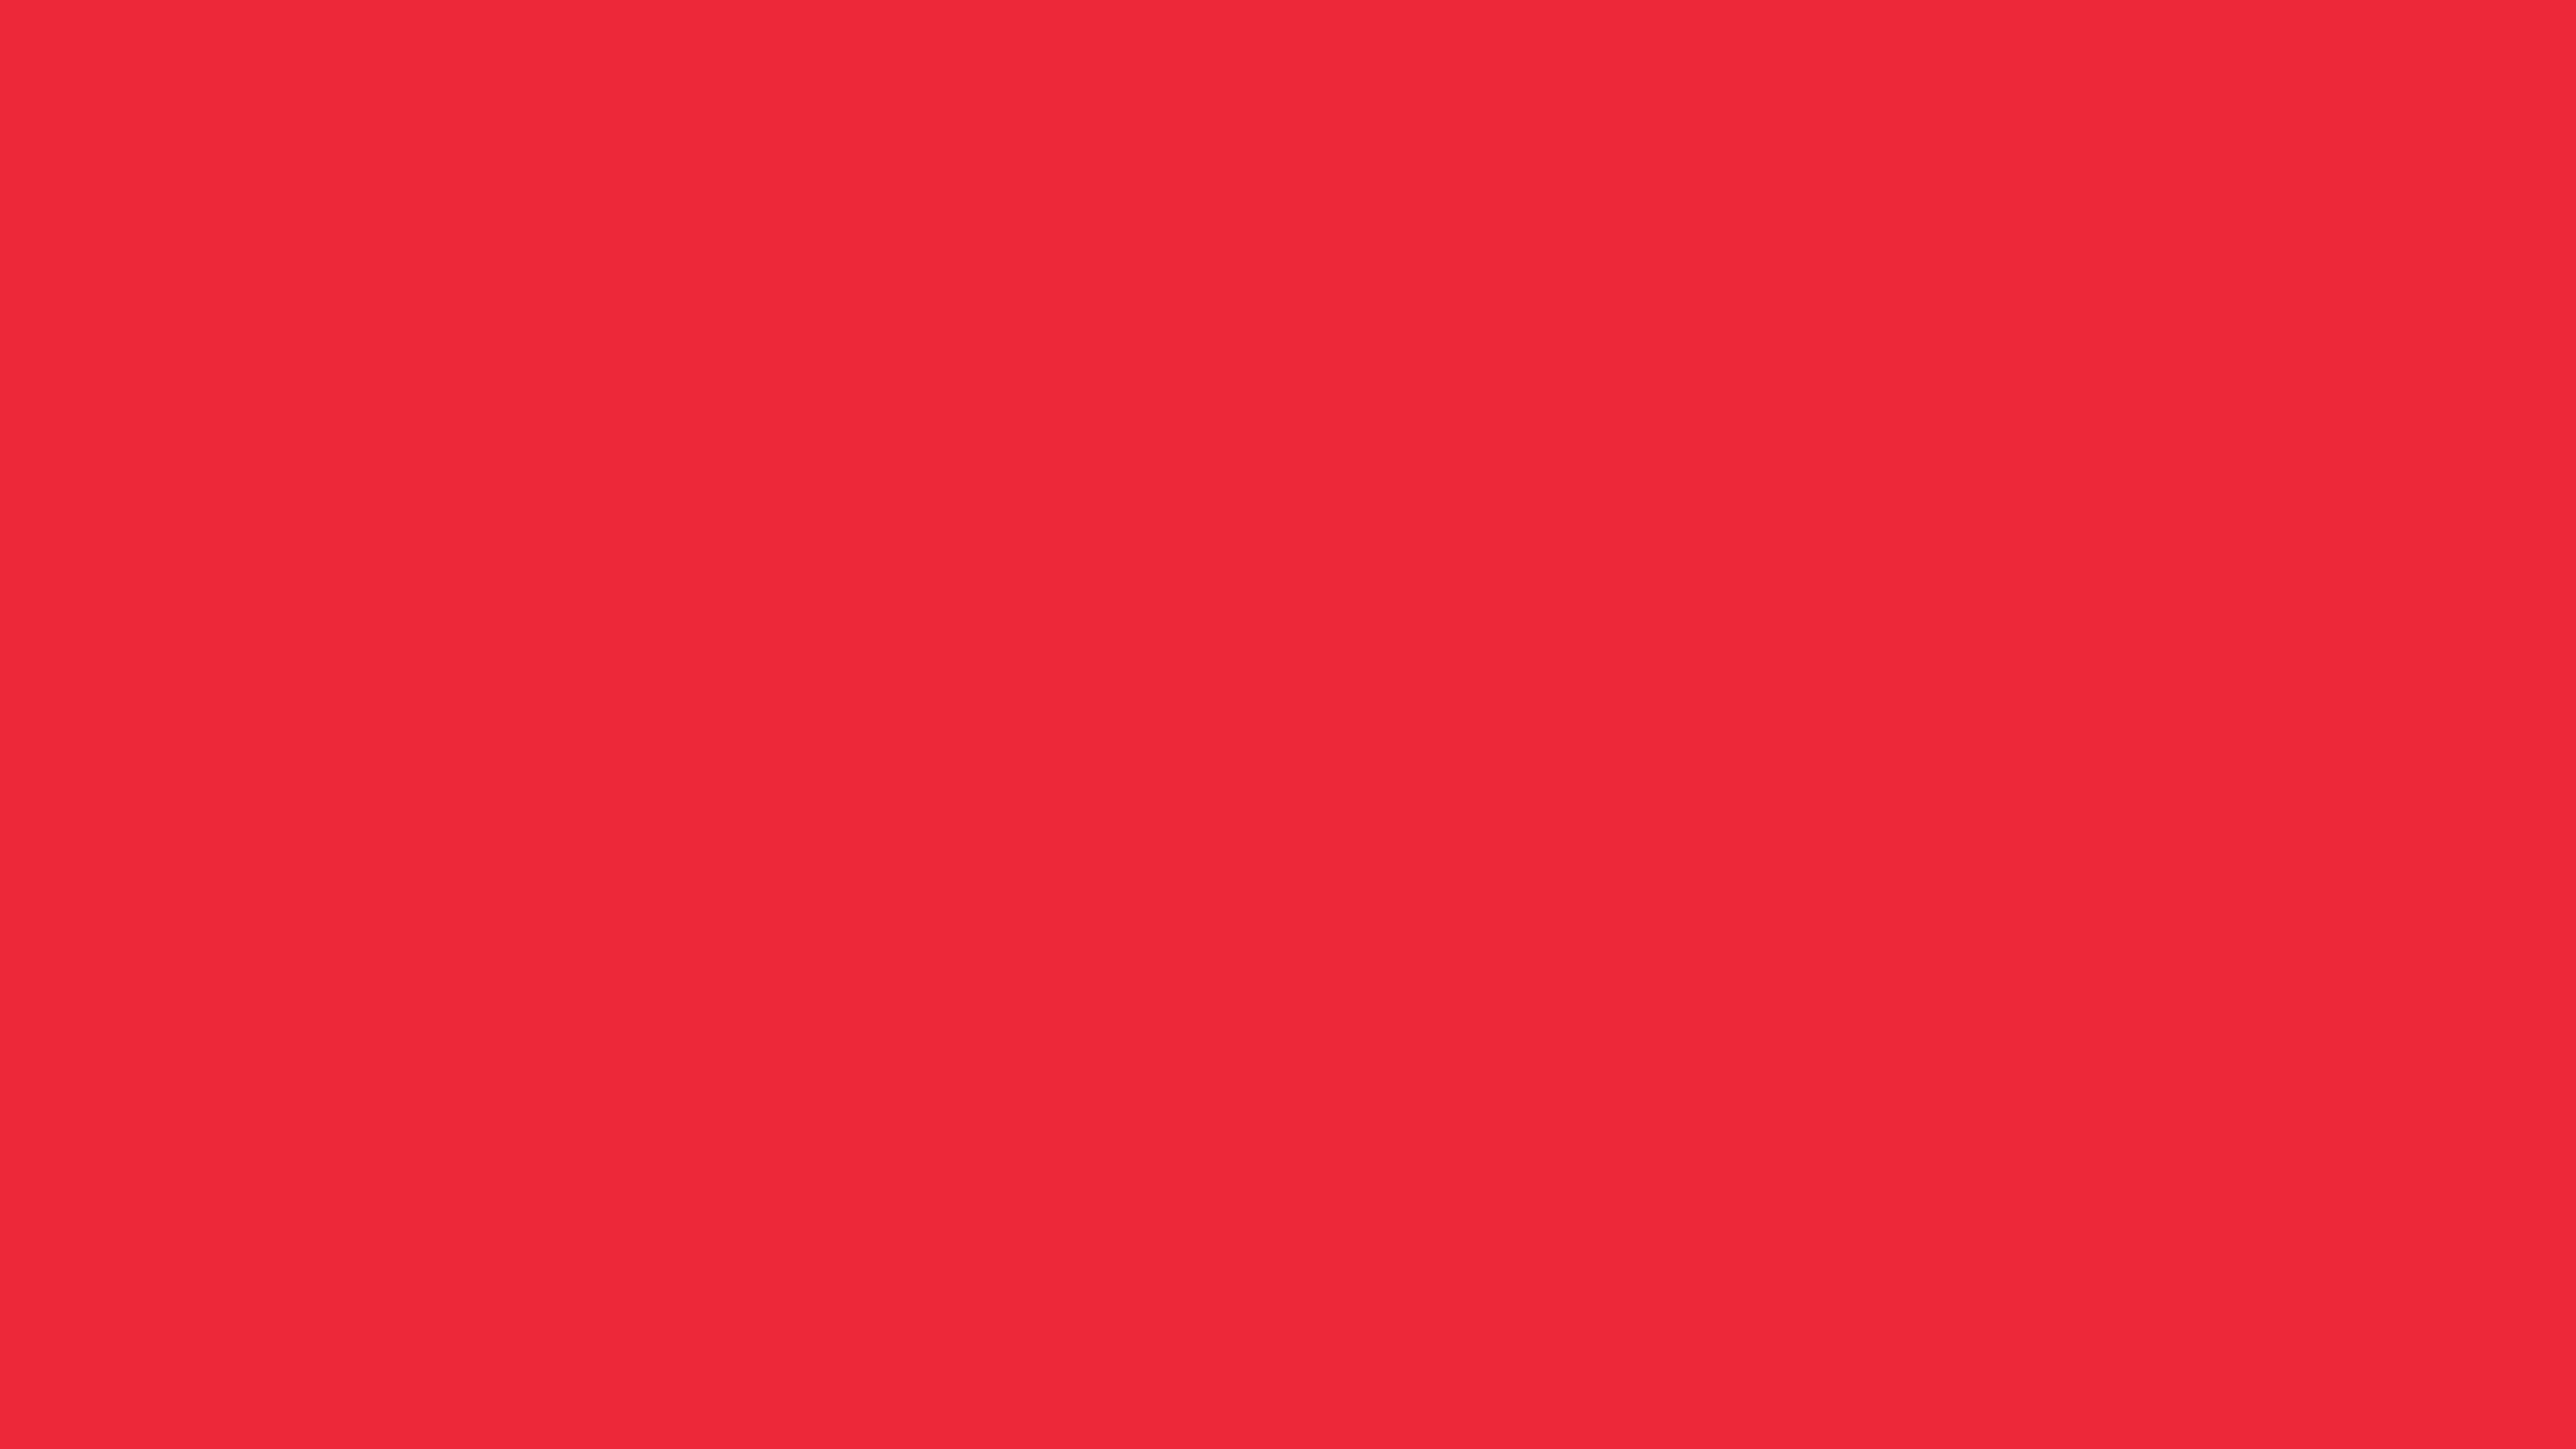 7680x4320 Red Pantone Solid Color Background